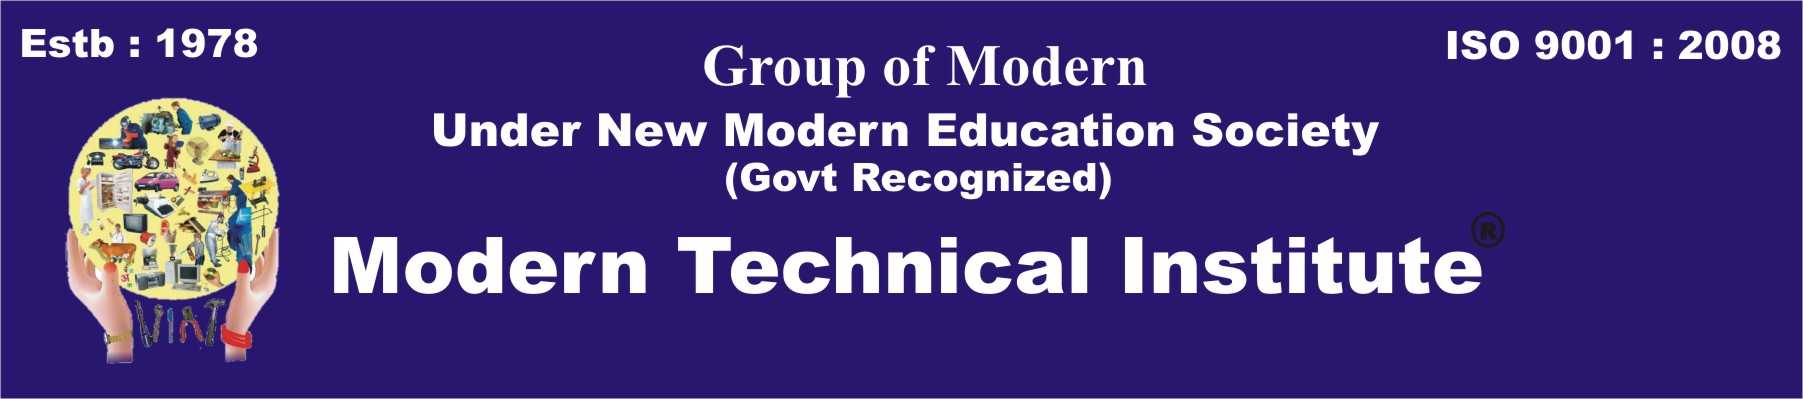 Modern Technical Institute